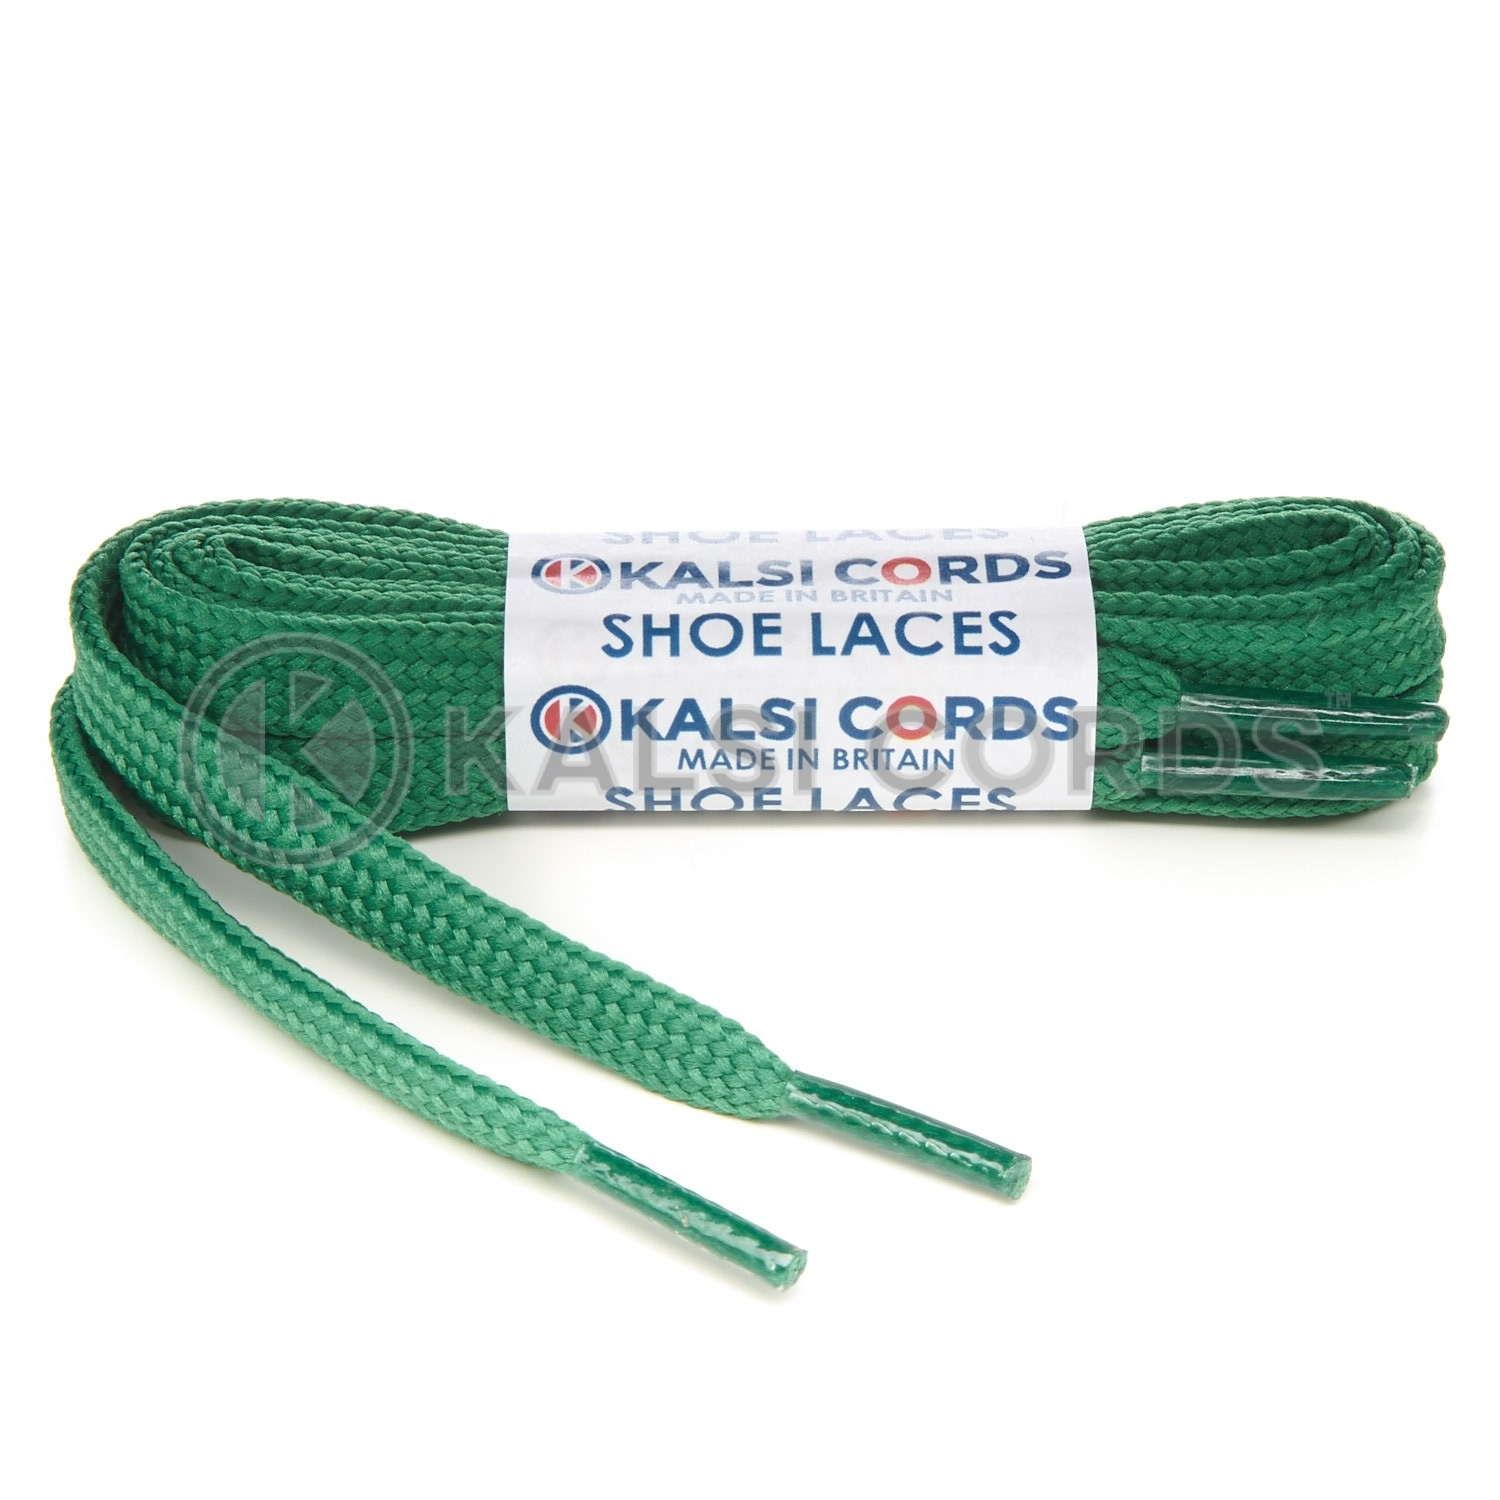 R1176 9mm Flat Shoe Laces Tubular Emerald Green PG517 Sports Trainers Boots Footwear Hoodies Joggers Drawstring Drawcord Braid